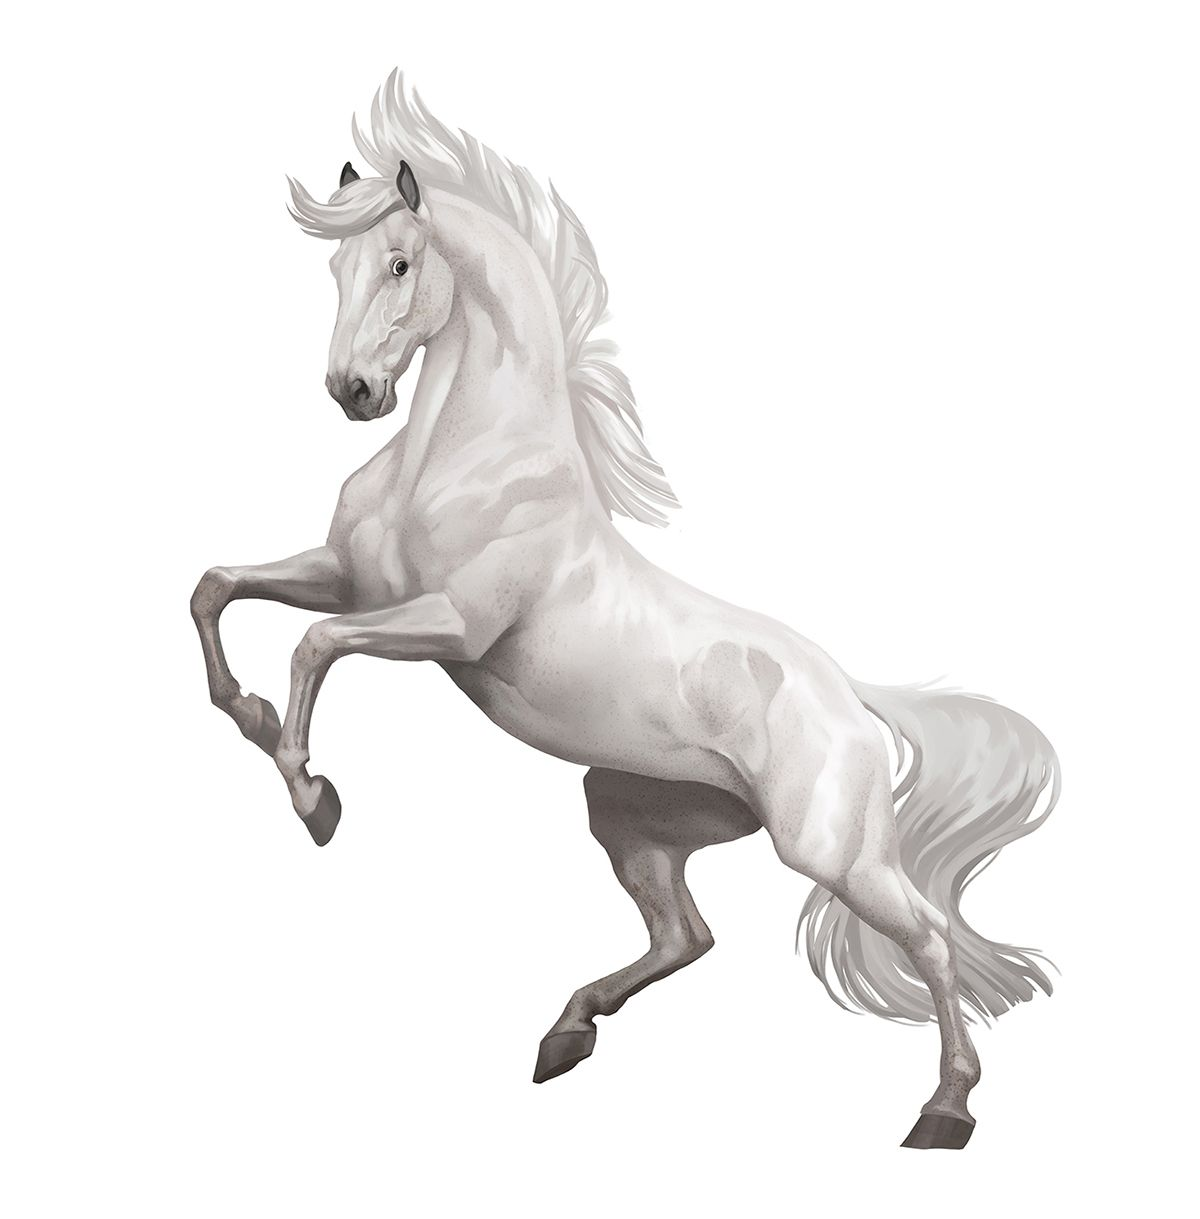 Star Stable Online on Behance | Breyer horses | Pinterest | Arte